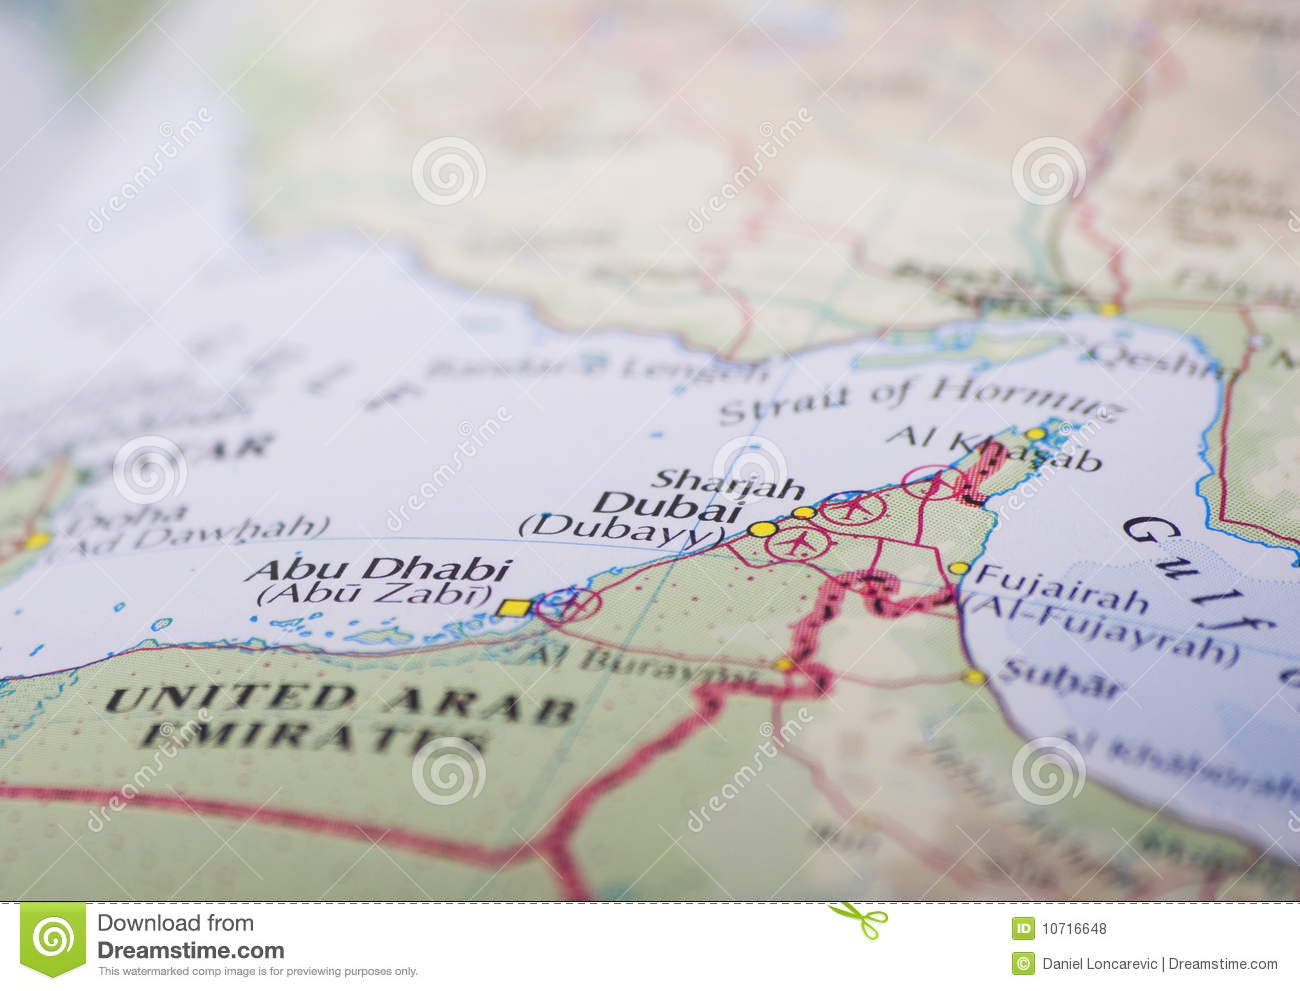 Abu Dhabi and Dubai map stock photo. Image of arab, cartography ...